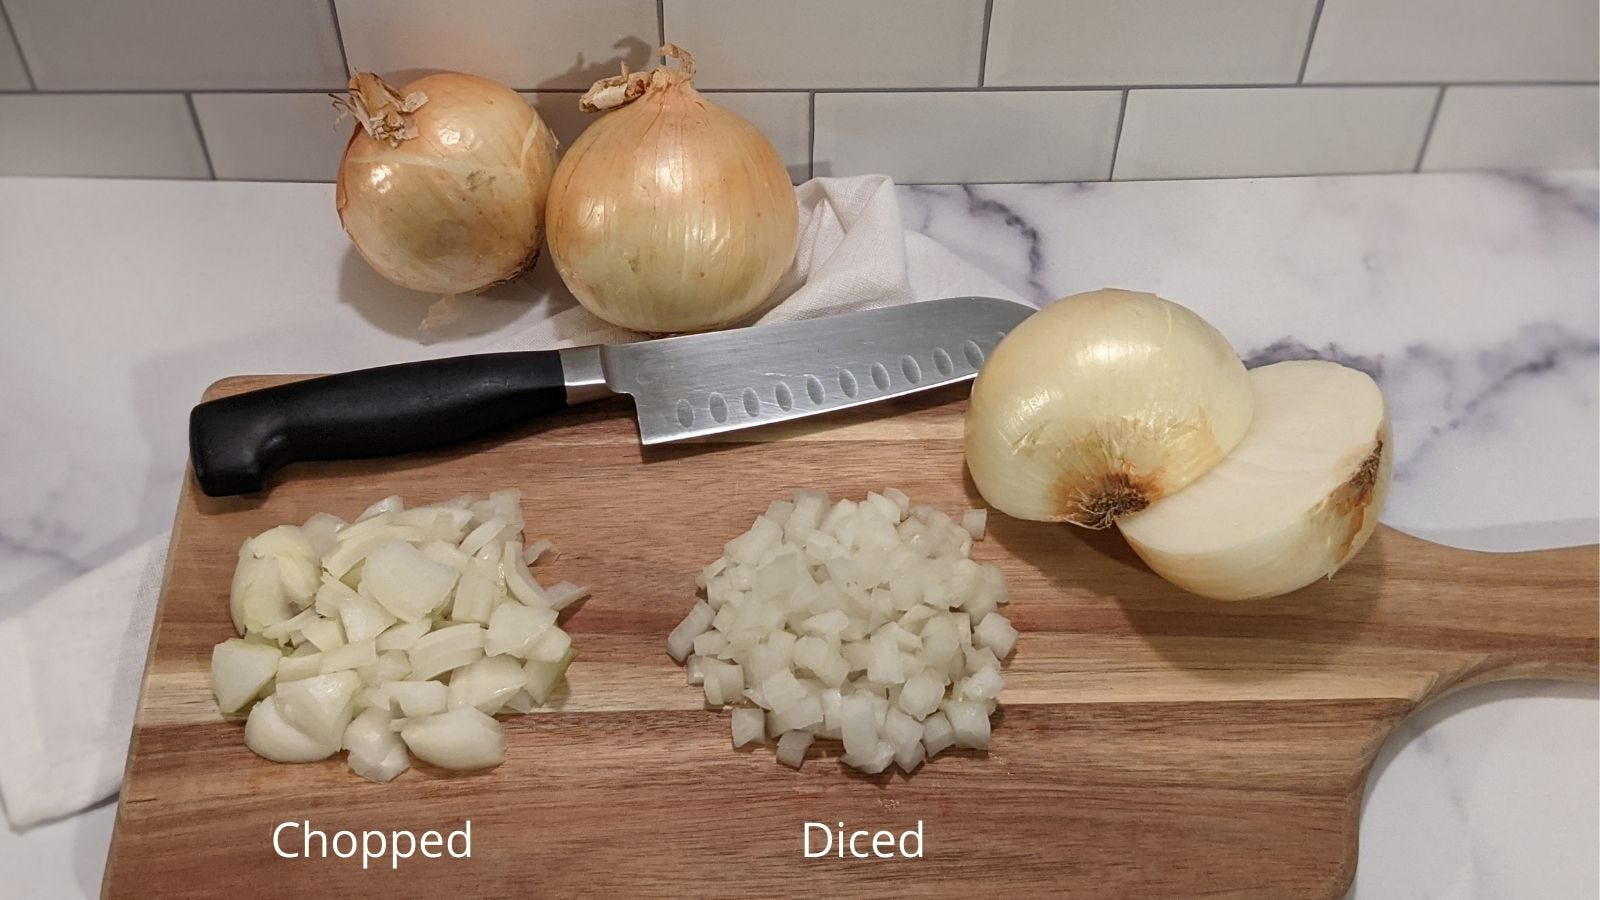 A cutting board with two small piles of onion displaying what chopped onion and diced onion looks like.